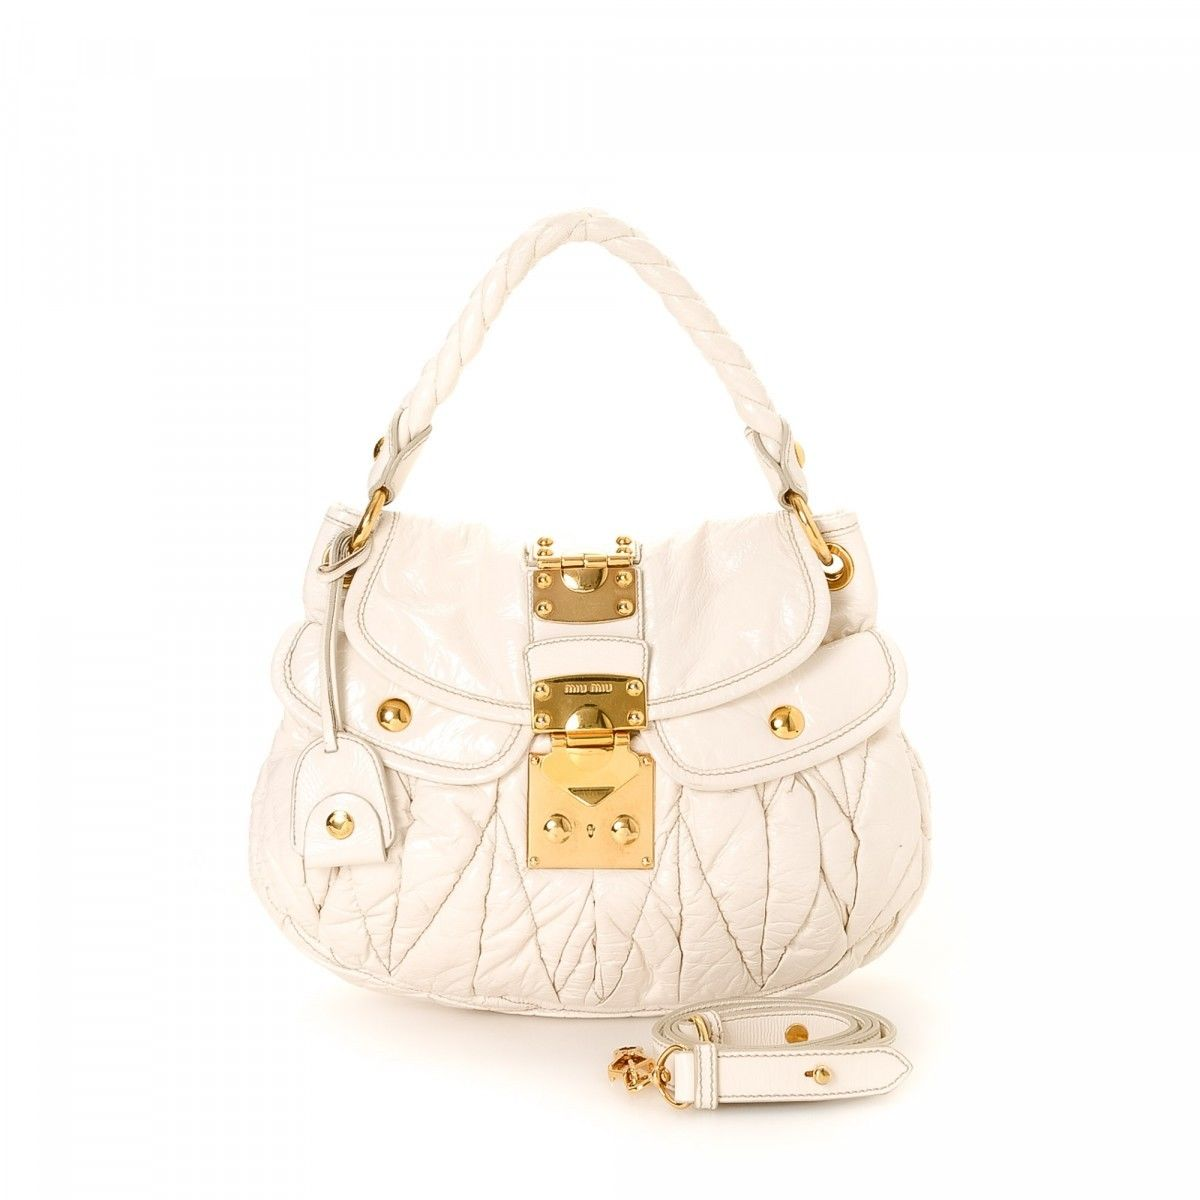 White logo leather shoulder bag Miu Miu